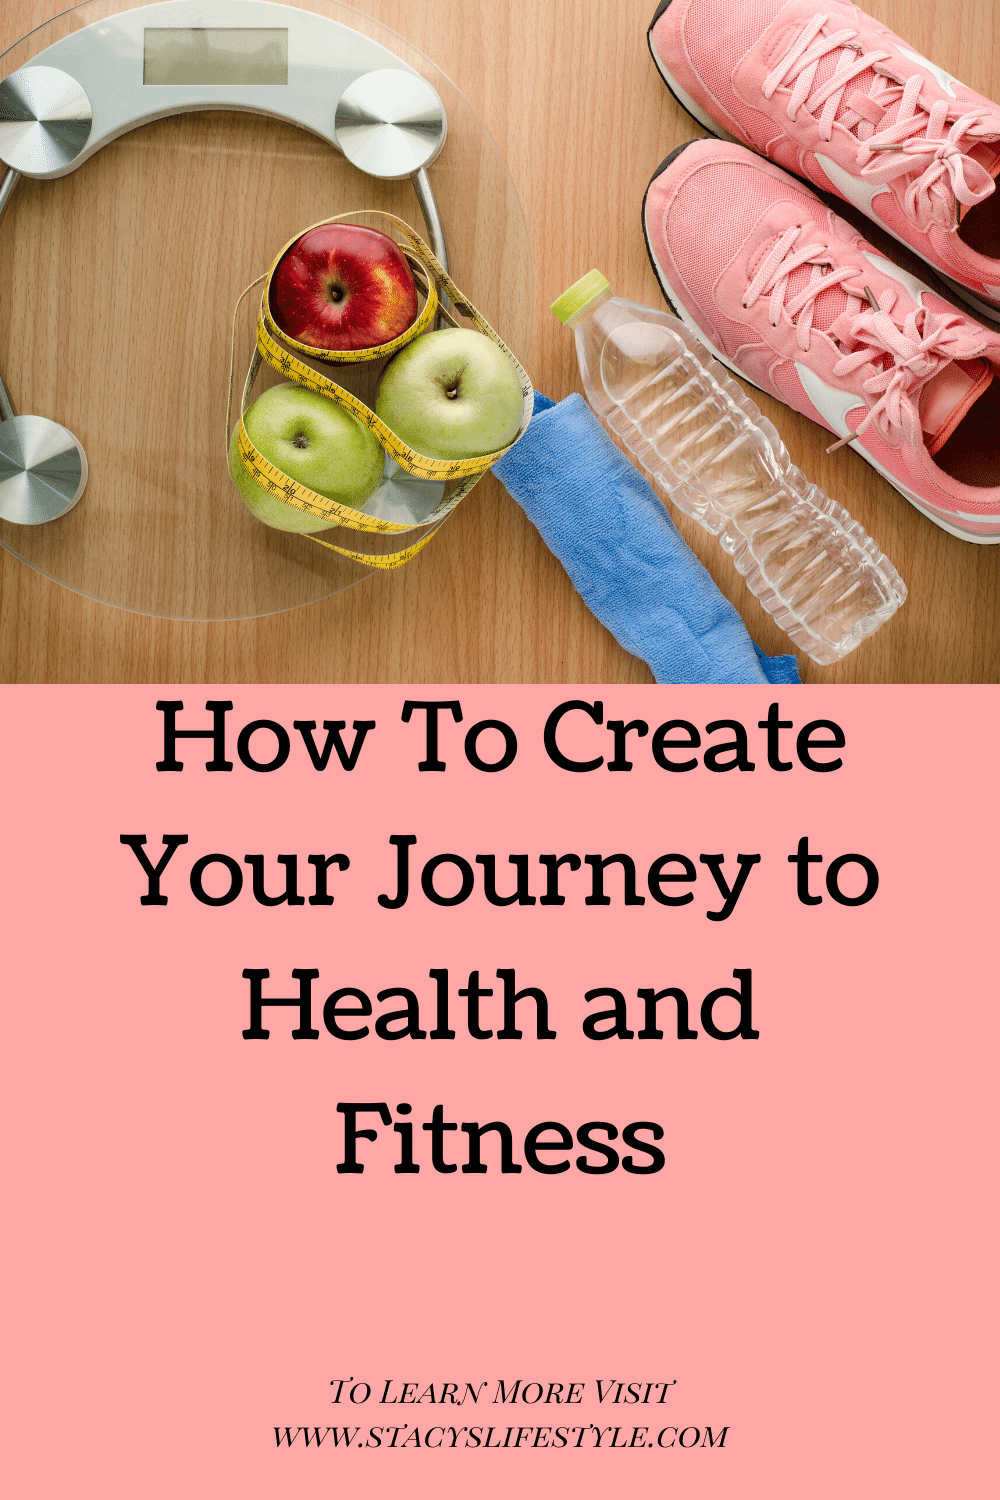 How To Create Your Journey to Health and Fitness